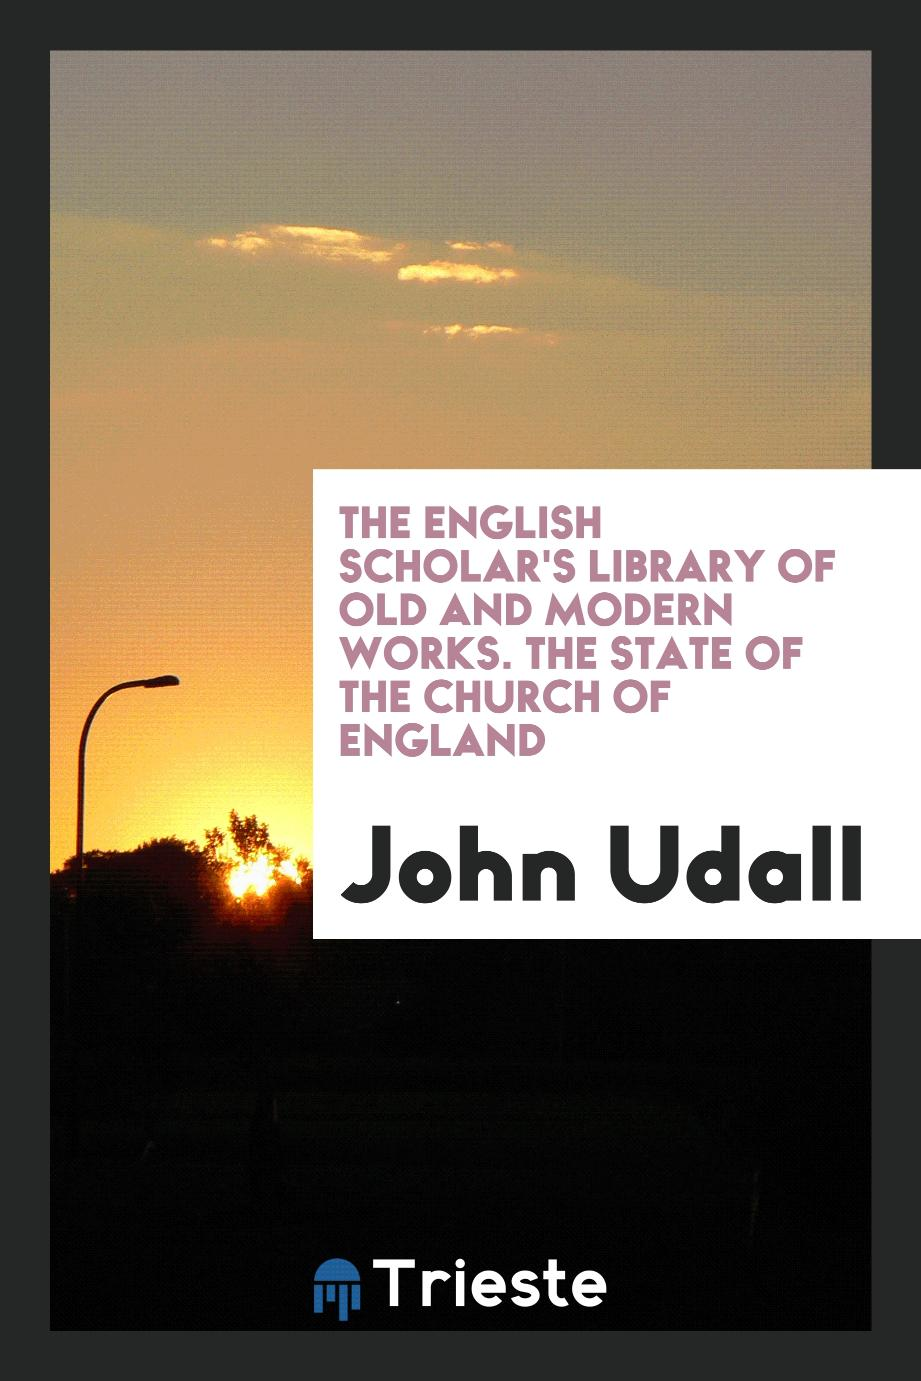 The English scholar's library of old and modern works. The State of the Church of England